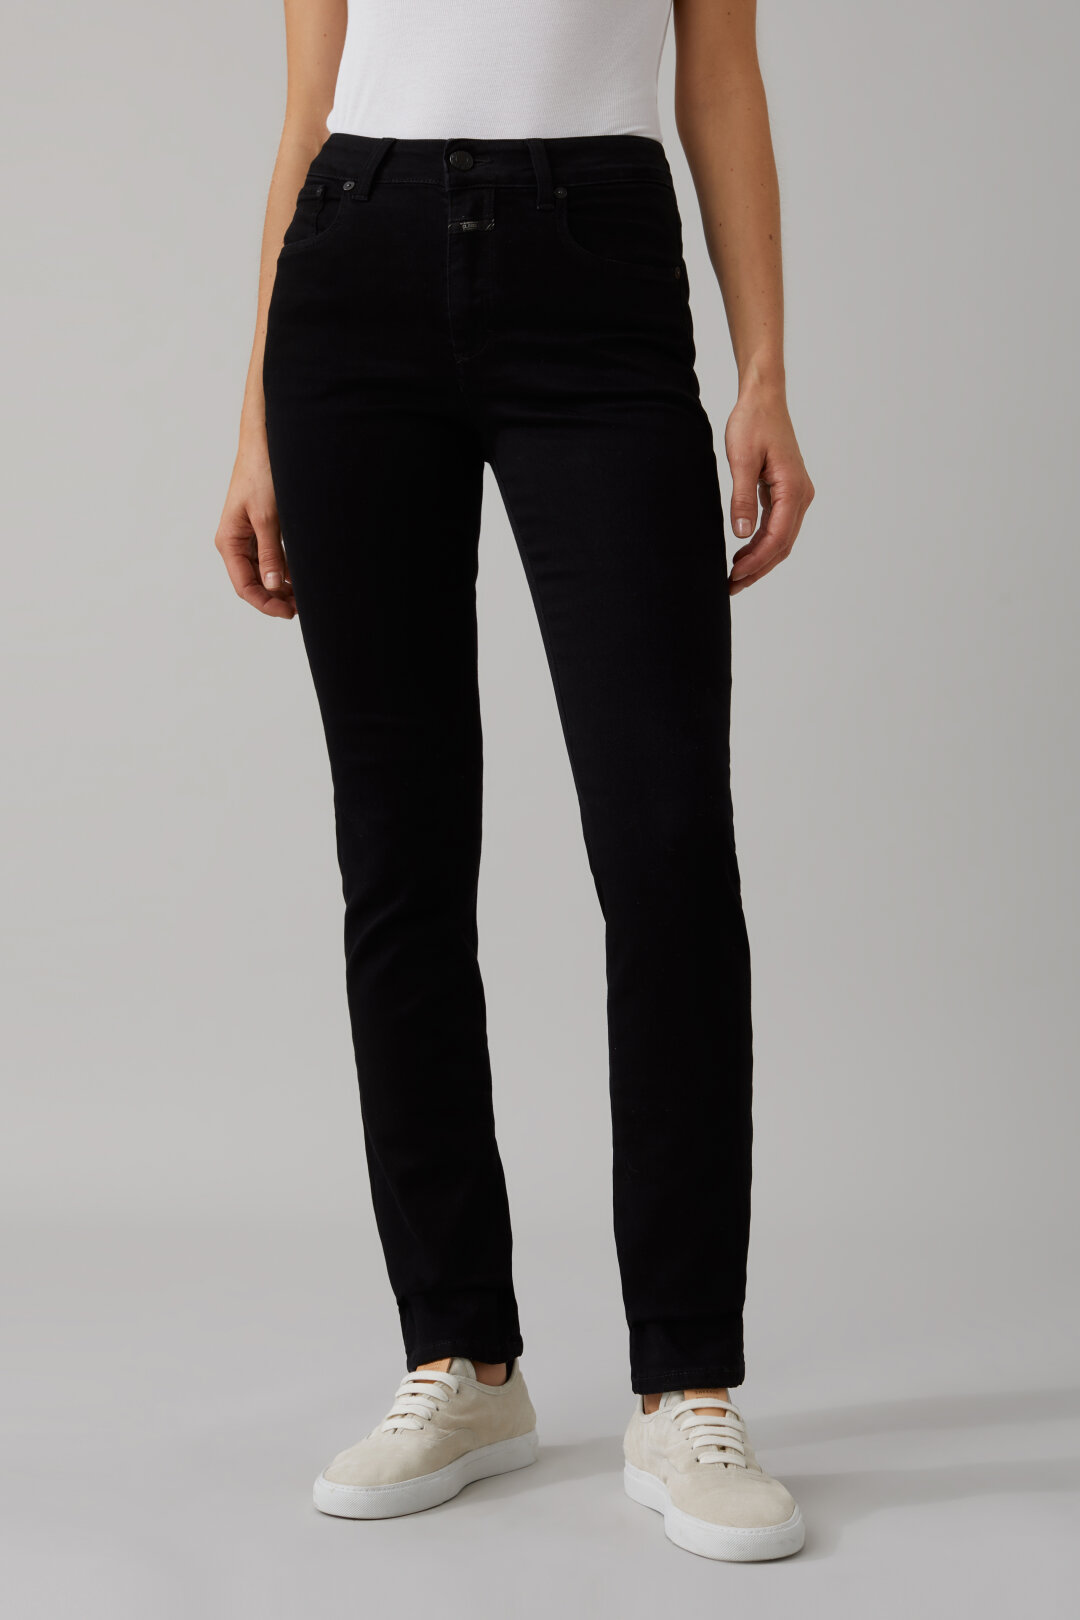 Britney Black Stretch Denim